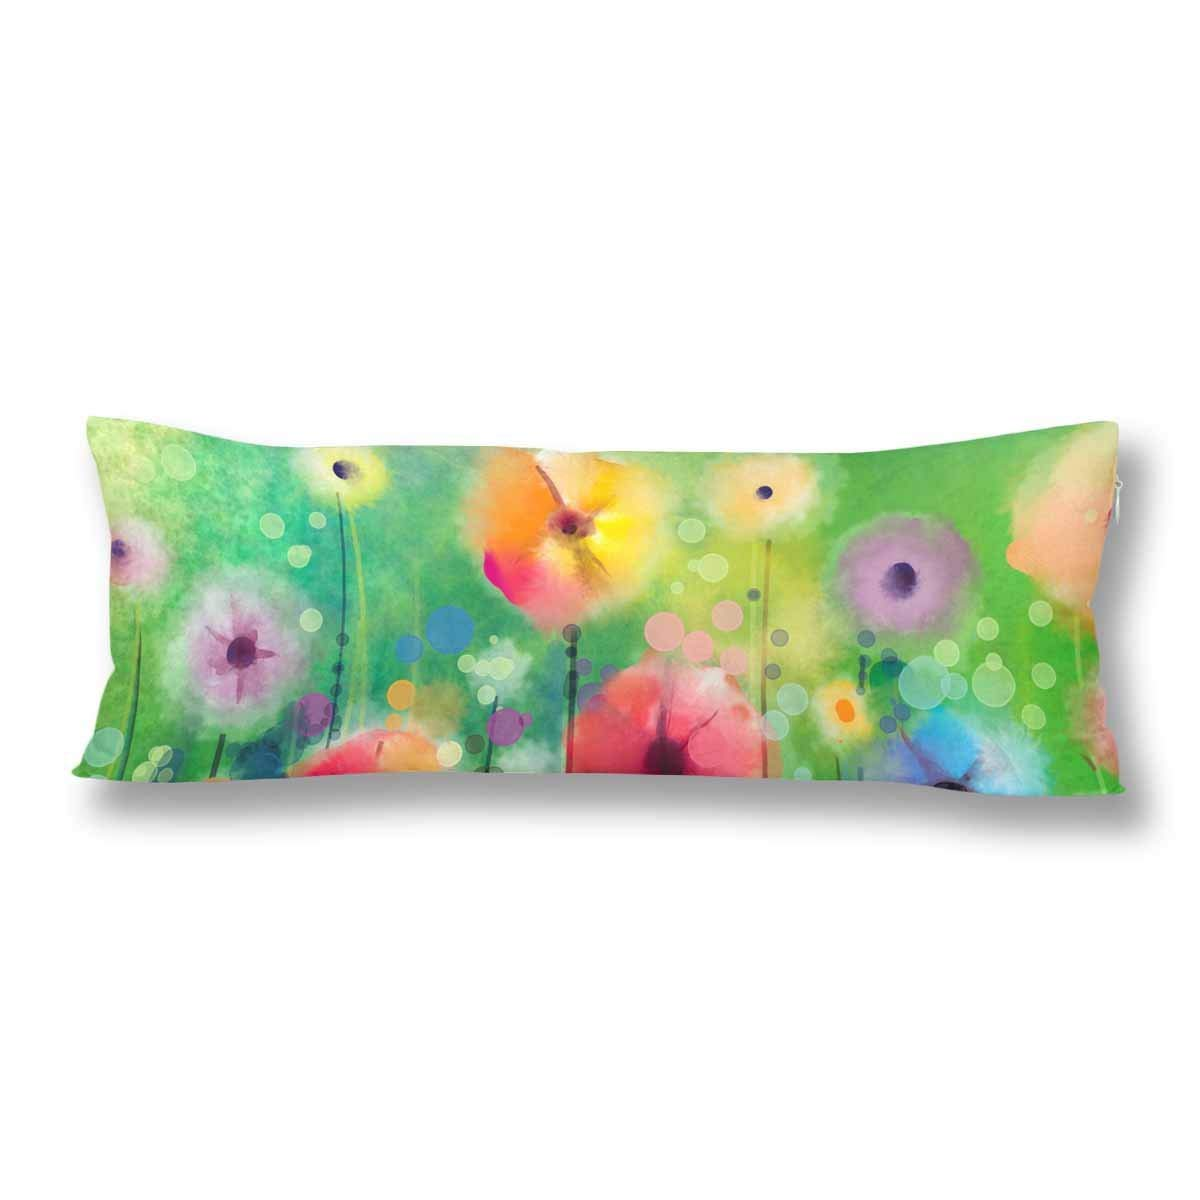 GCKG Spring Flower Seasonal Nature Body Pillow Covers Pillowcase 20x60 inches, Floral Watercolor Yellow Red Flower Body Pillow Case - image 2 de 2